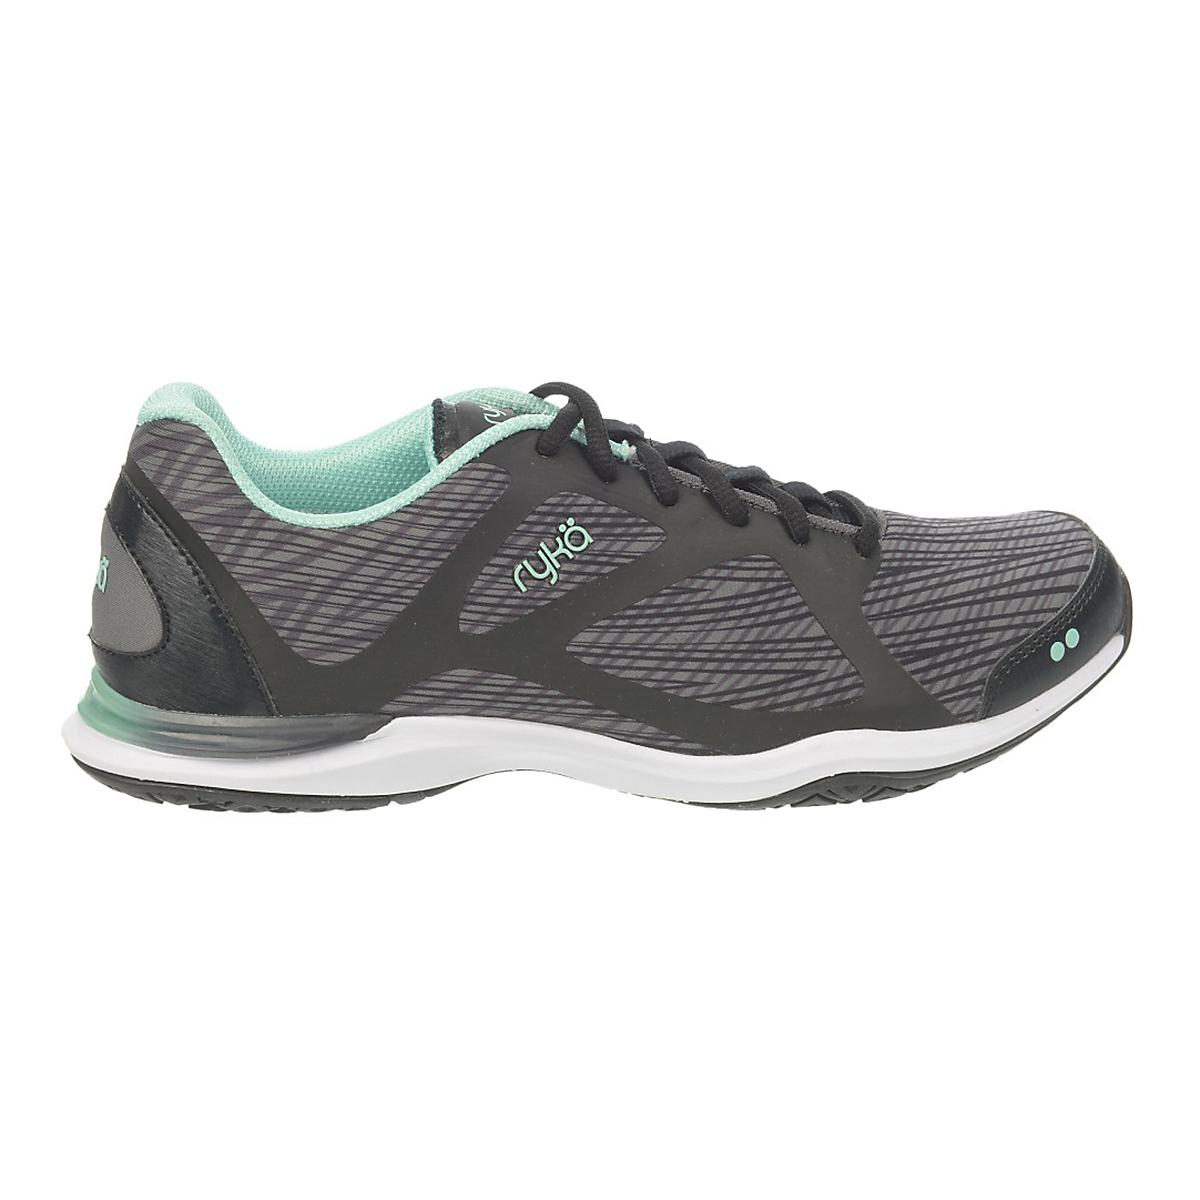 Green Mens Nike Workout Shoes Roadrunner